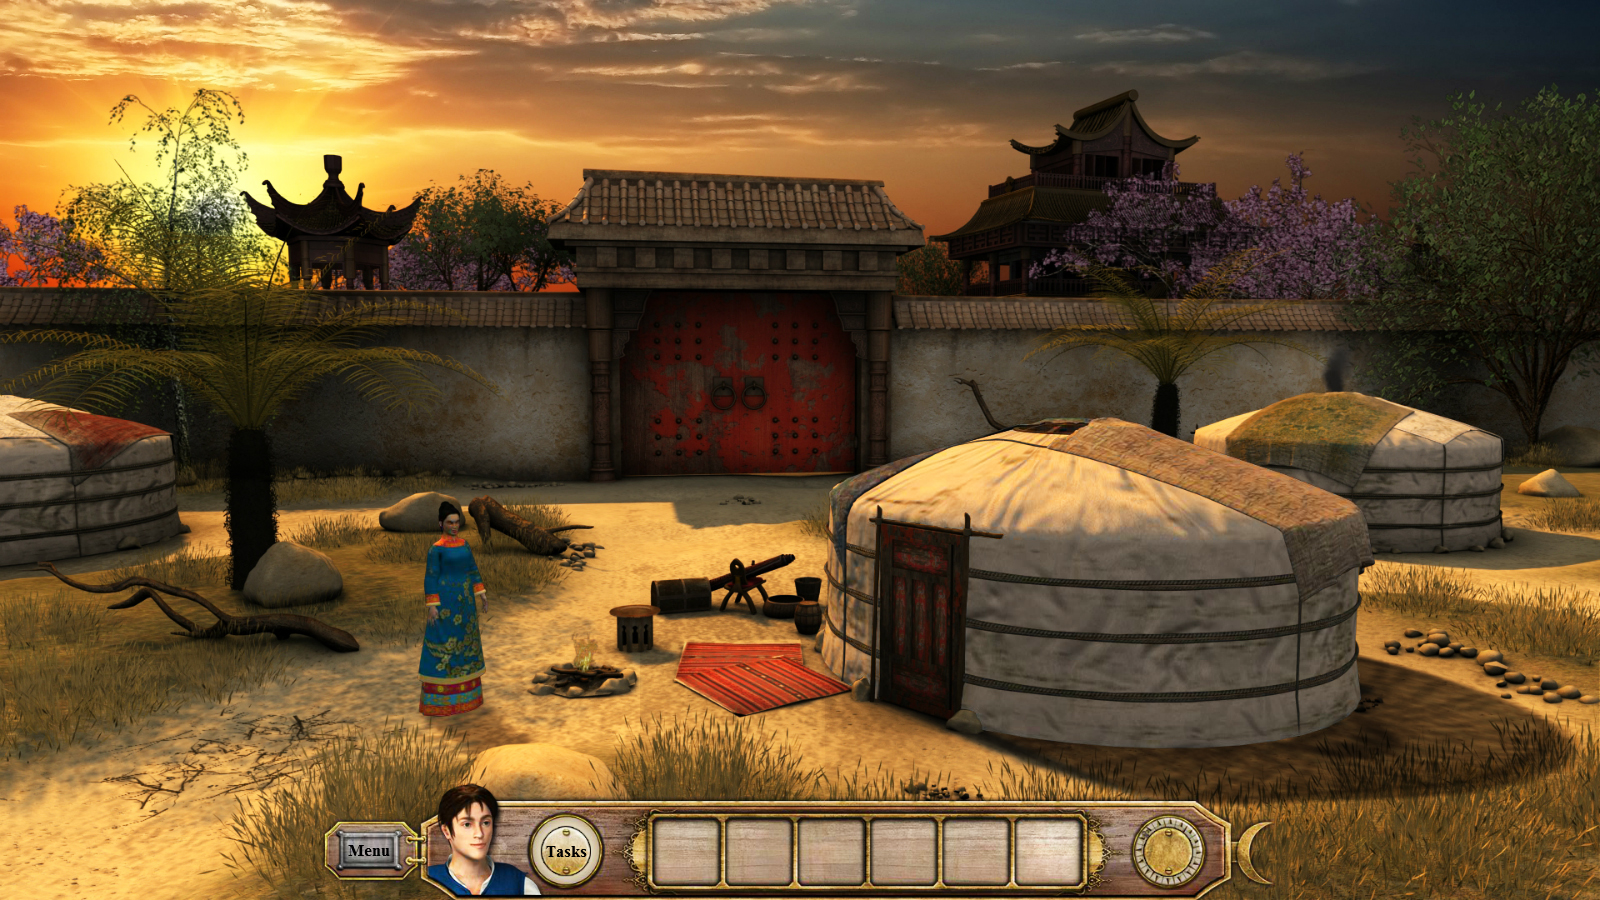 a detailed version of the authors expeditions in the travels of marco polo Download the app and start listening to the travels of marco polo today - free   covell length: 11 hrs and 34 mins unabridged audiobook release date: 05-09 -03  with his 24-year journey through asia he surpassed all other travelers in  his  the degree of detail amazing, also marco p put in fascinating characters.